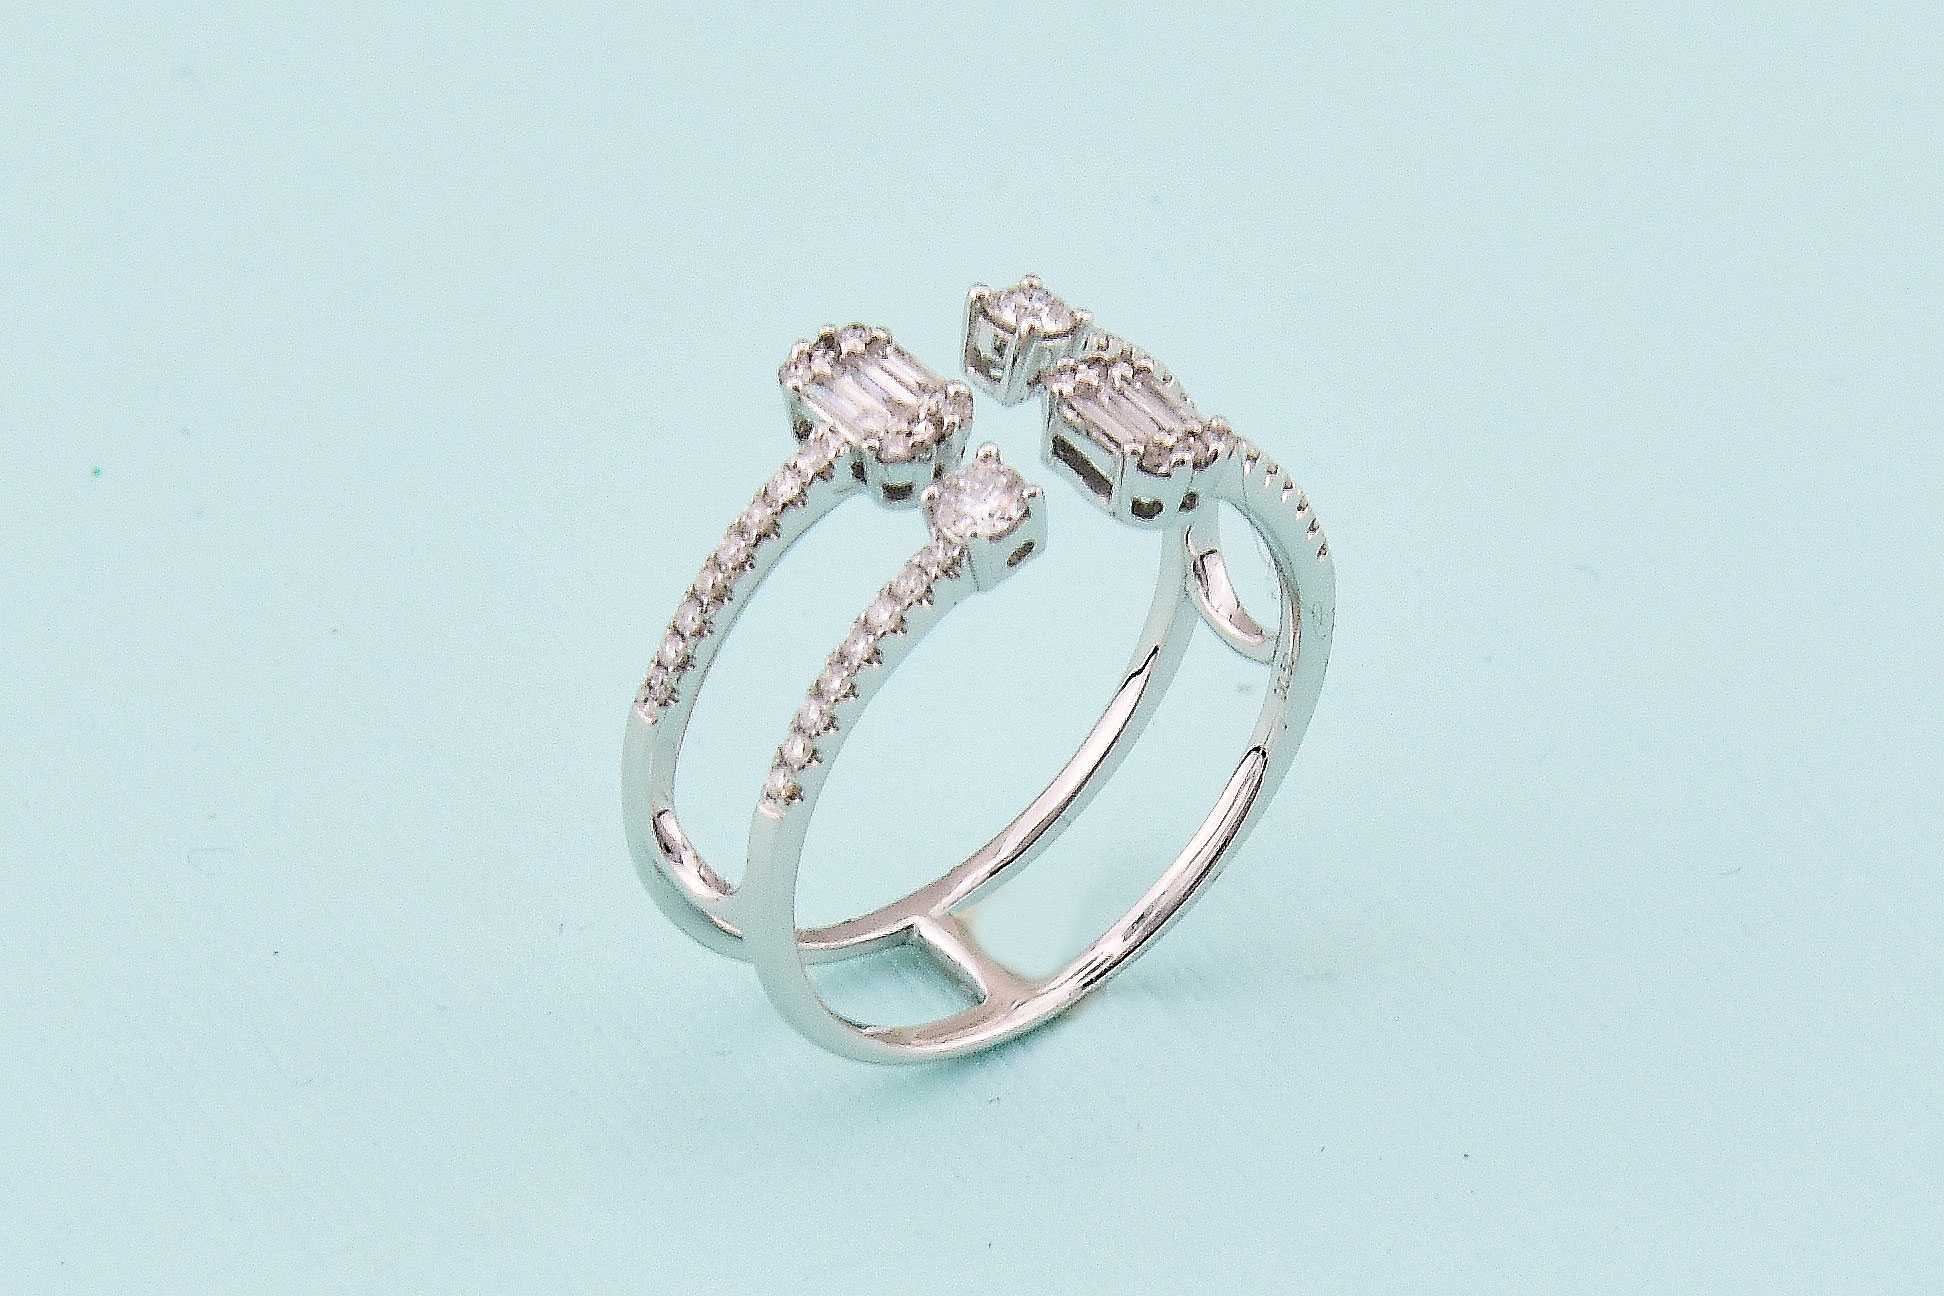 Stylish White Gold Open Diamond Ring